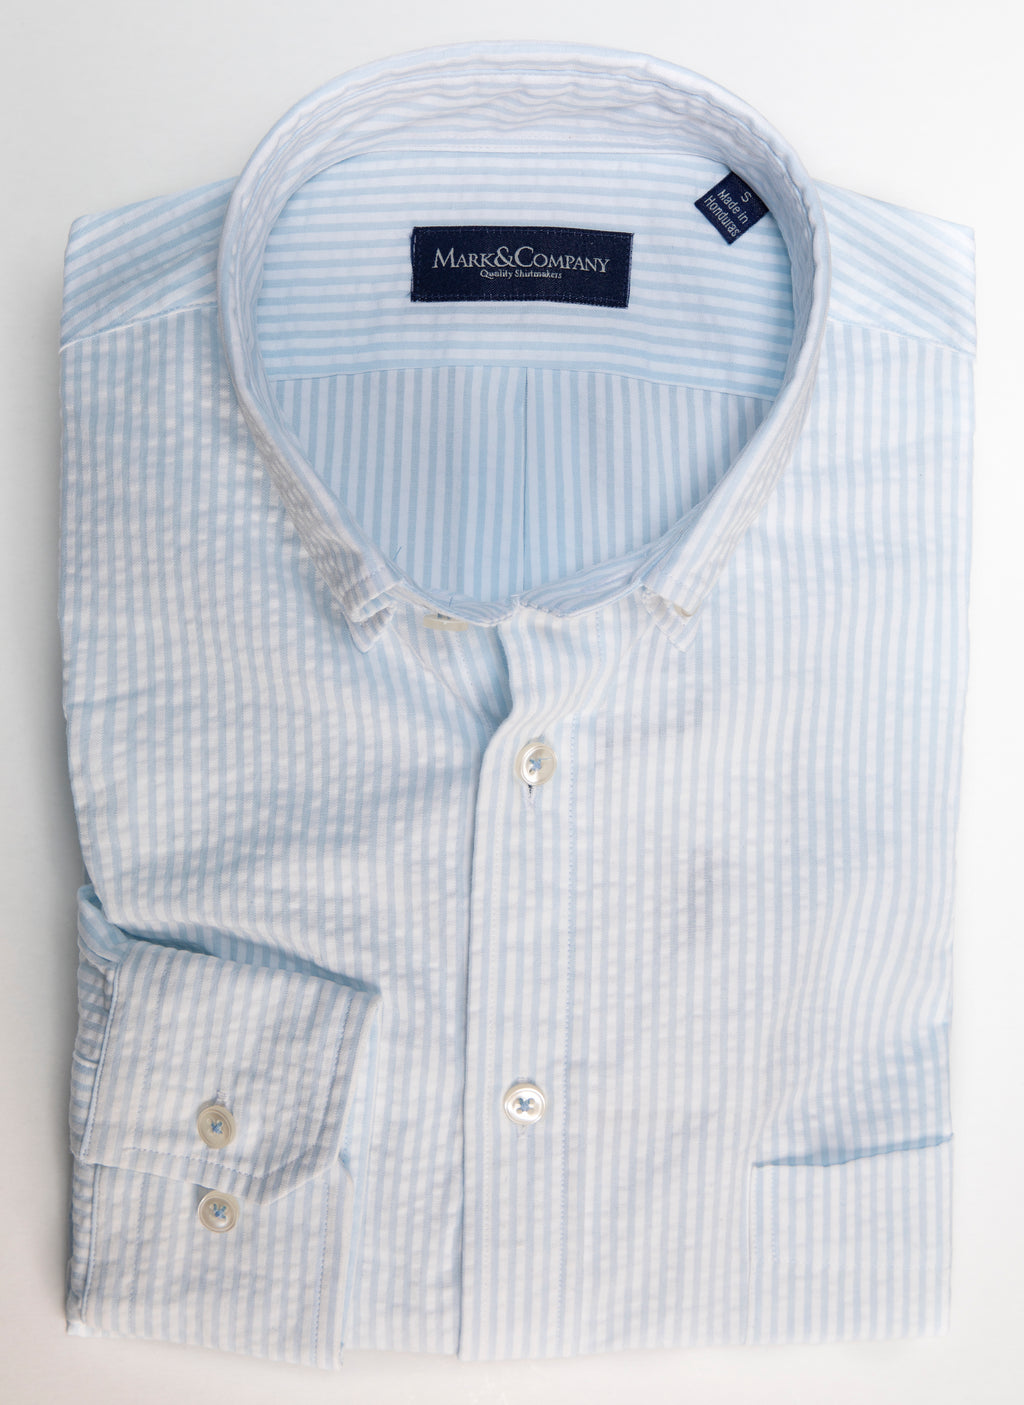 Light Blue and White Stripe Seersucker Button Down Shirt